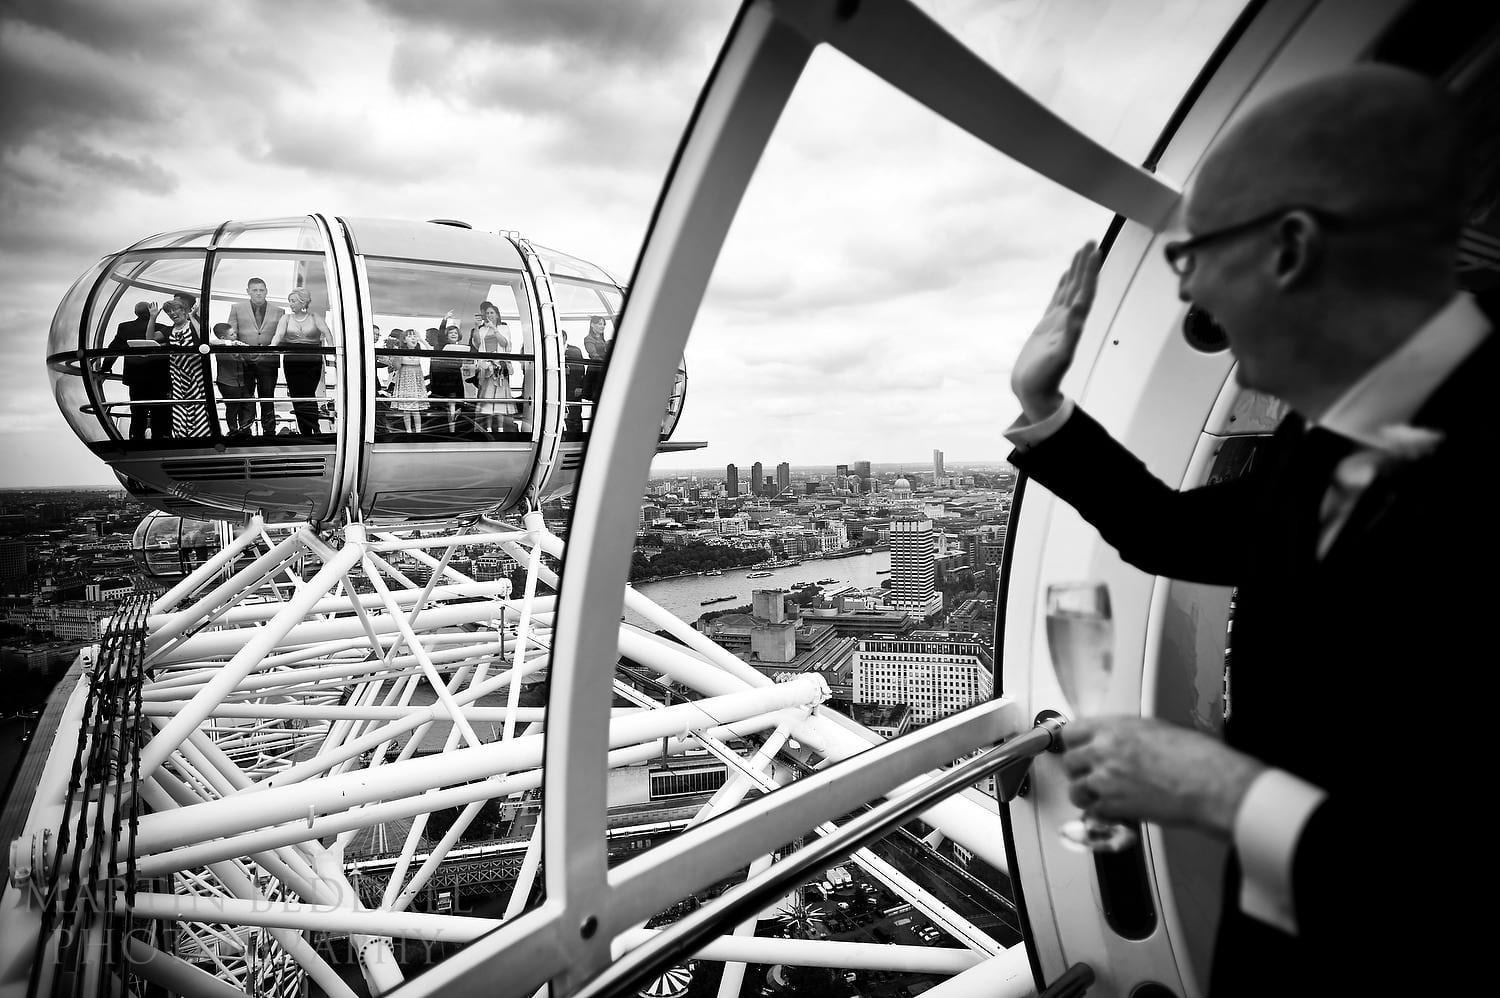 Groom waves to wedding guests in next pod at London Eye wedding